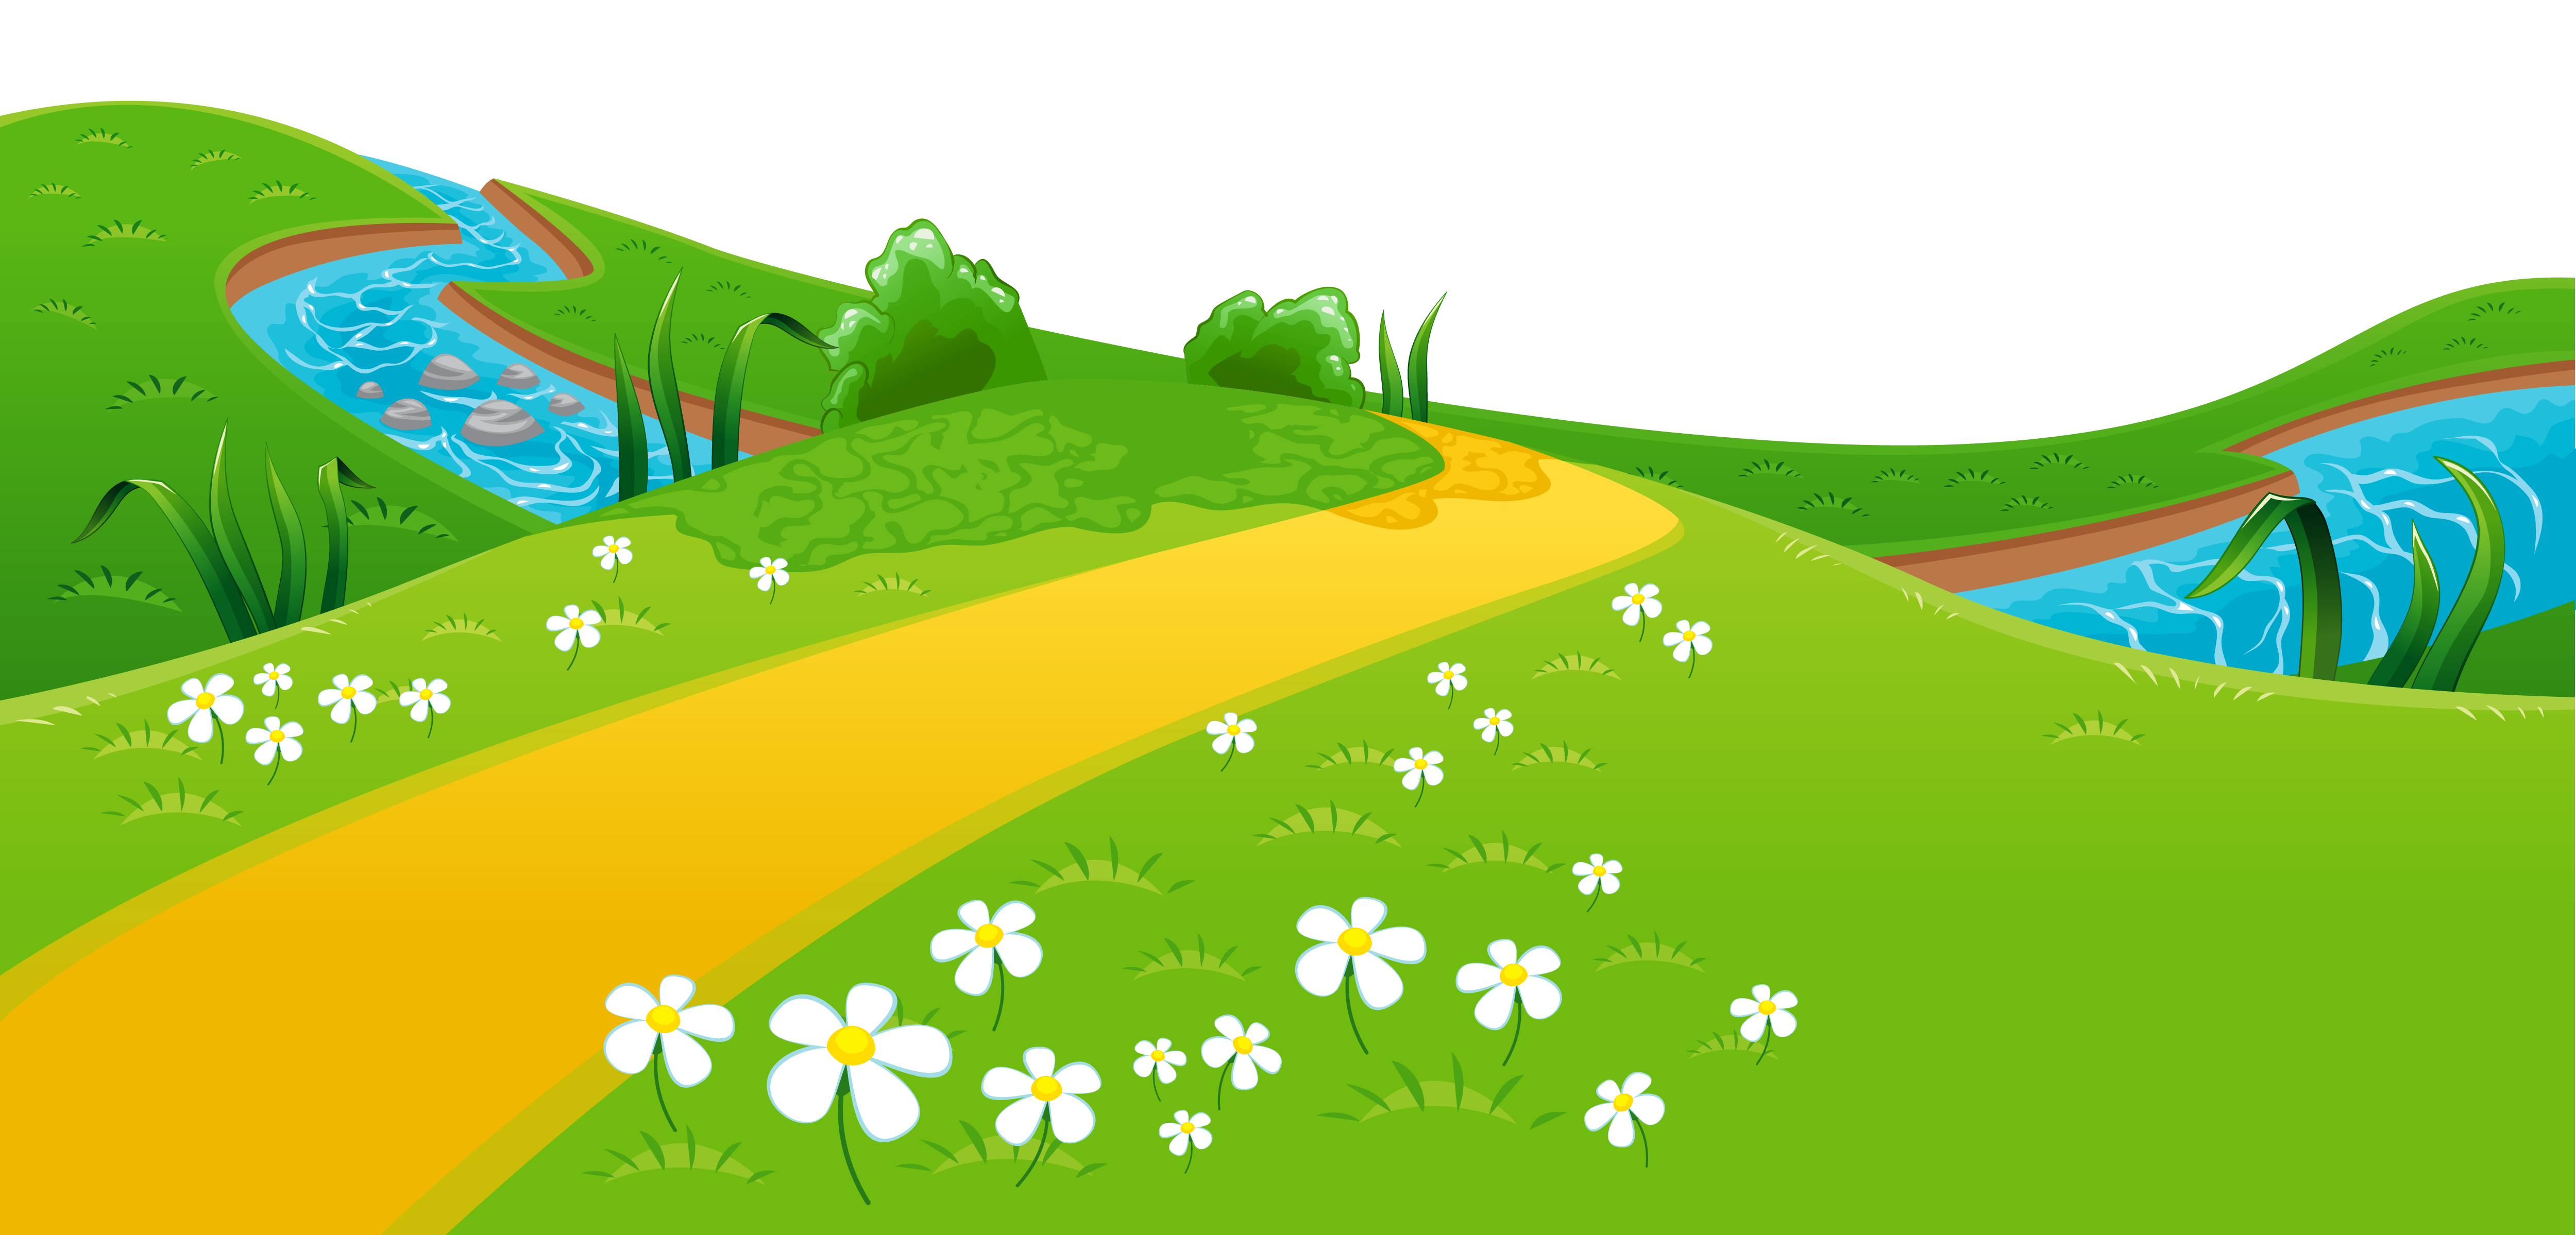 Meadow animated pencil and. Hills clipart hill scenery